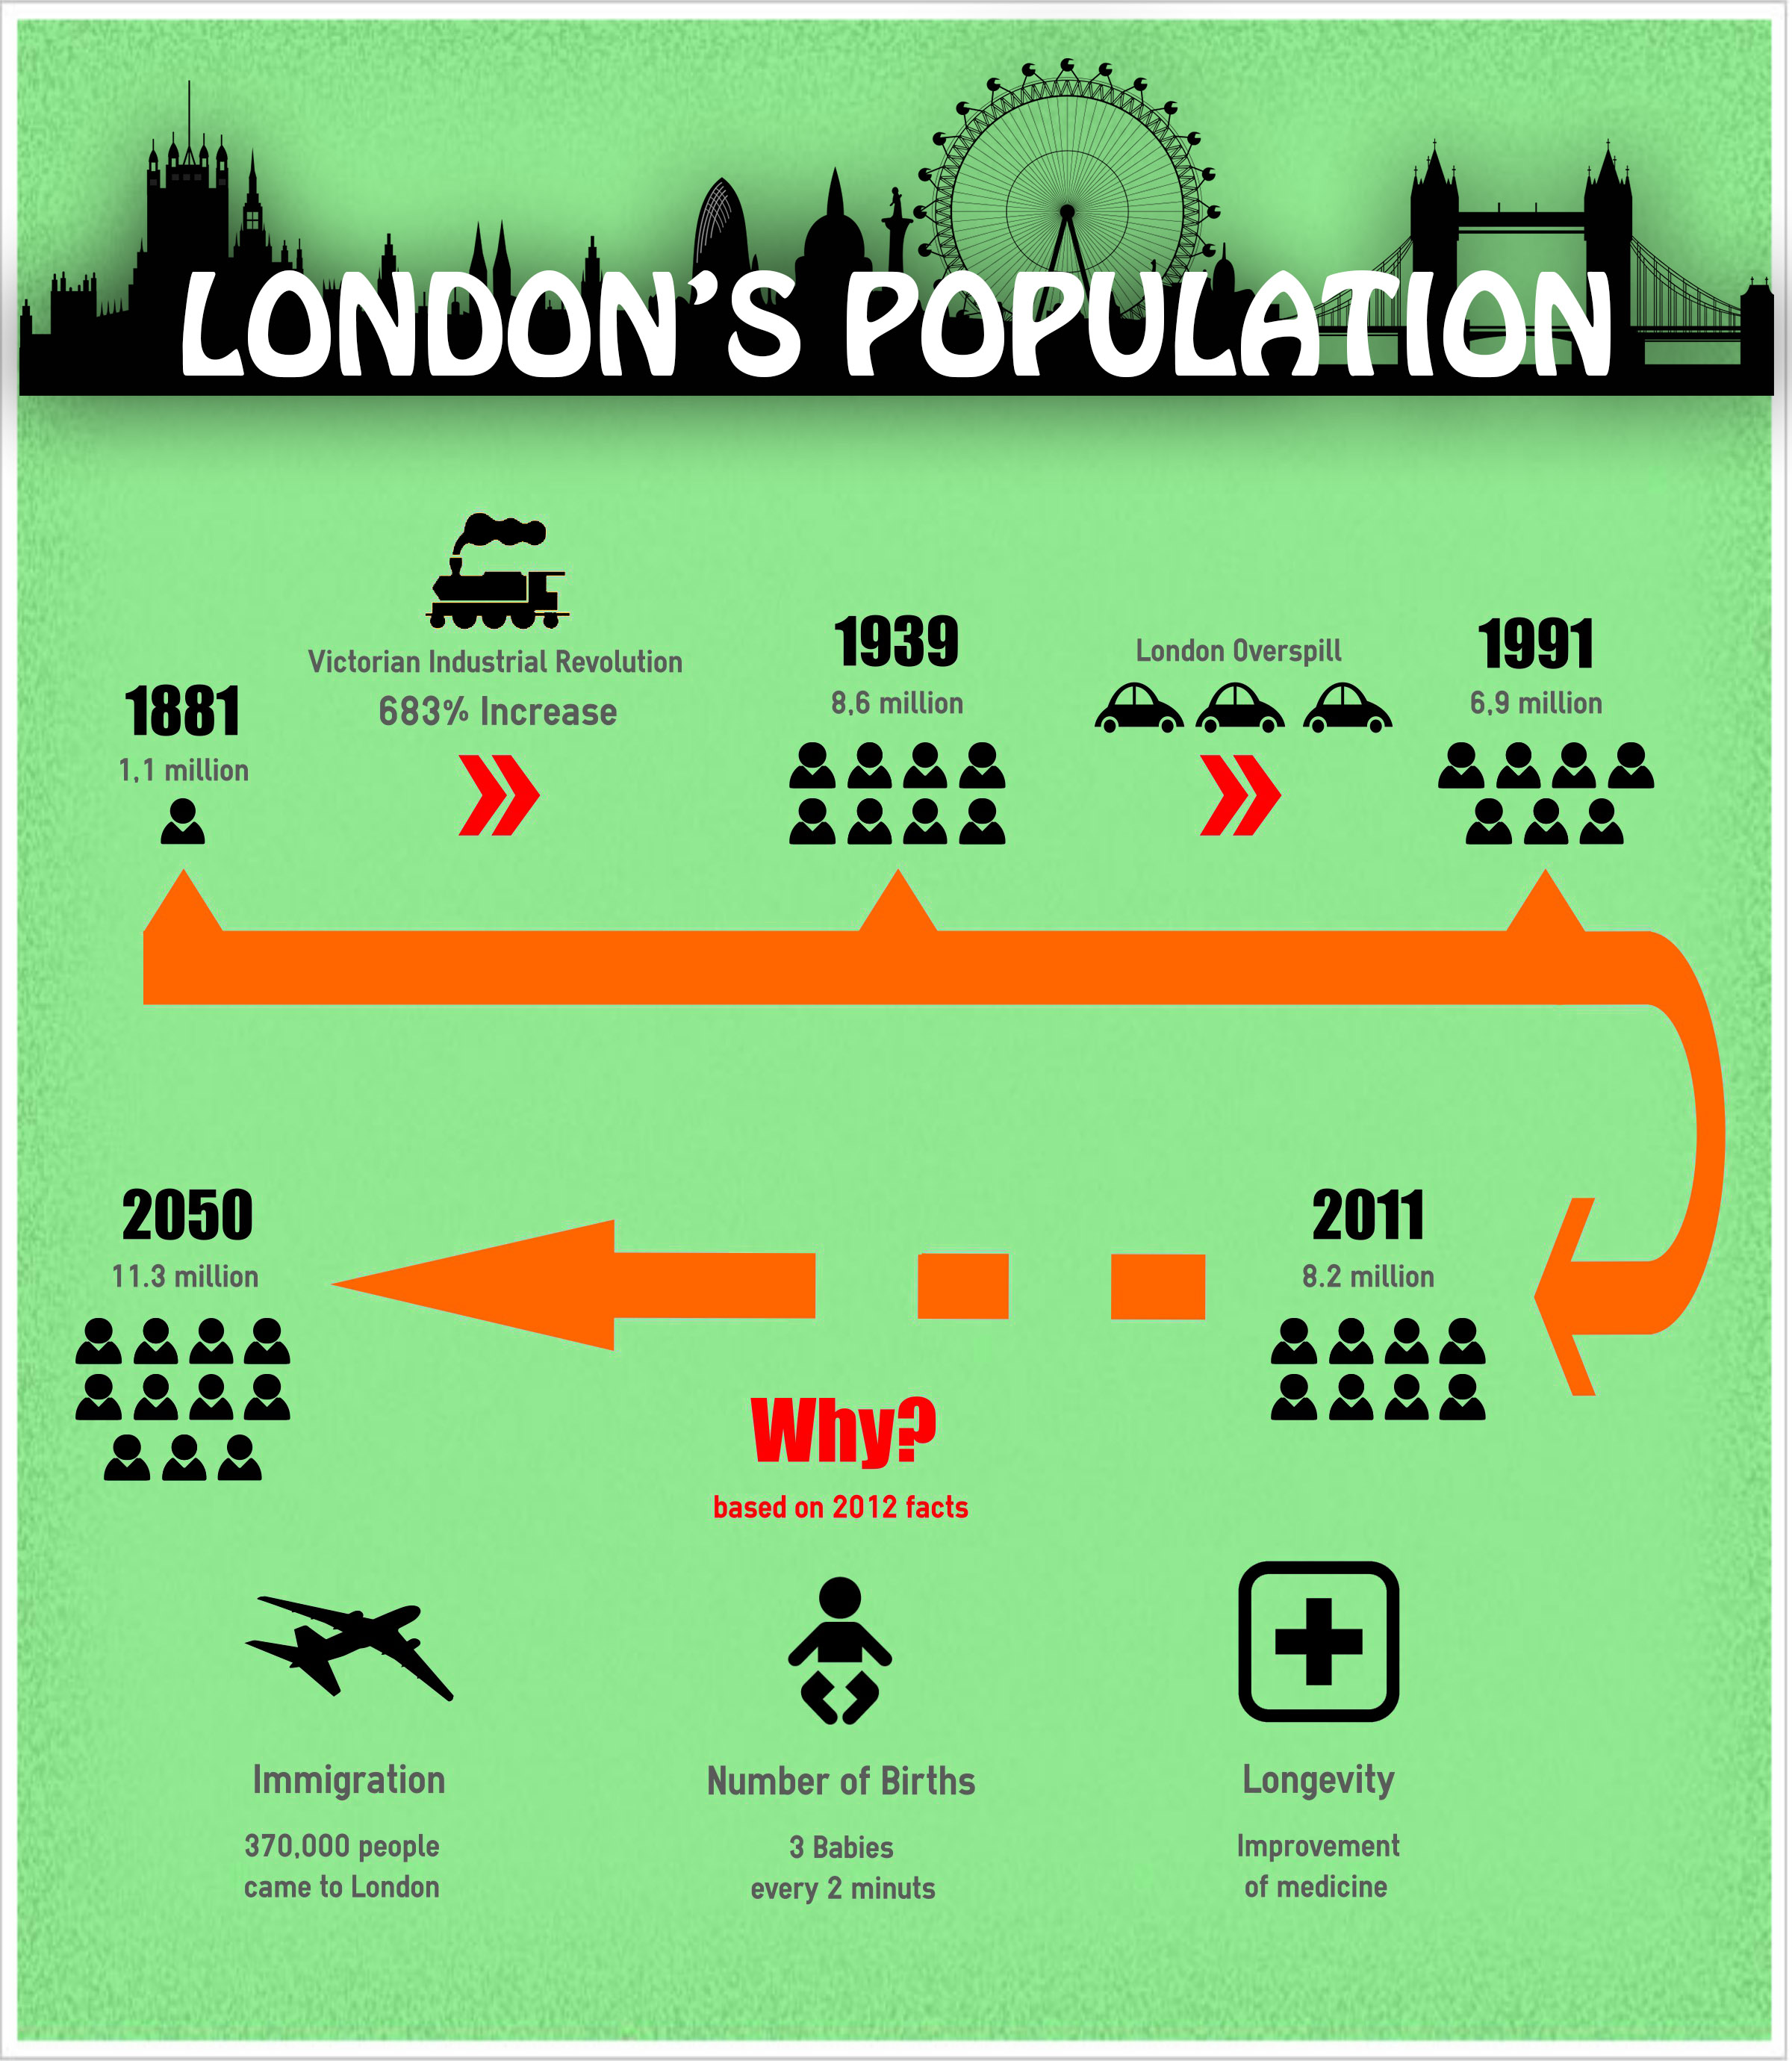 The population of London